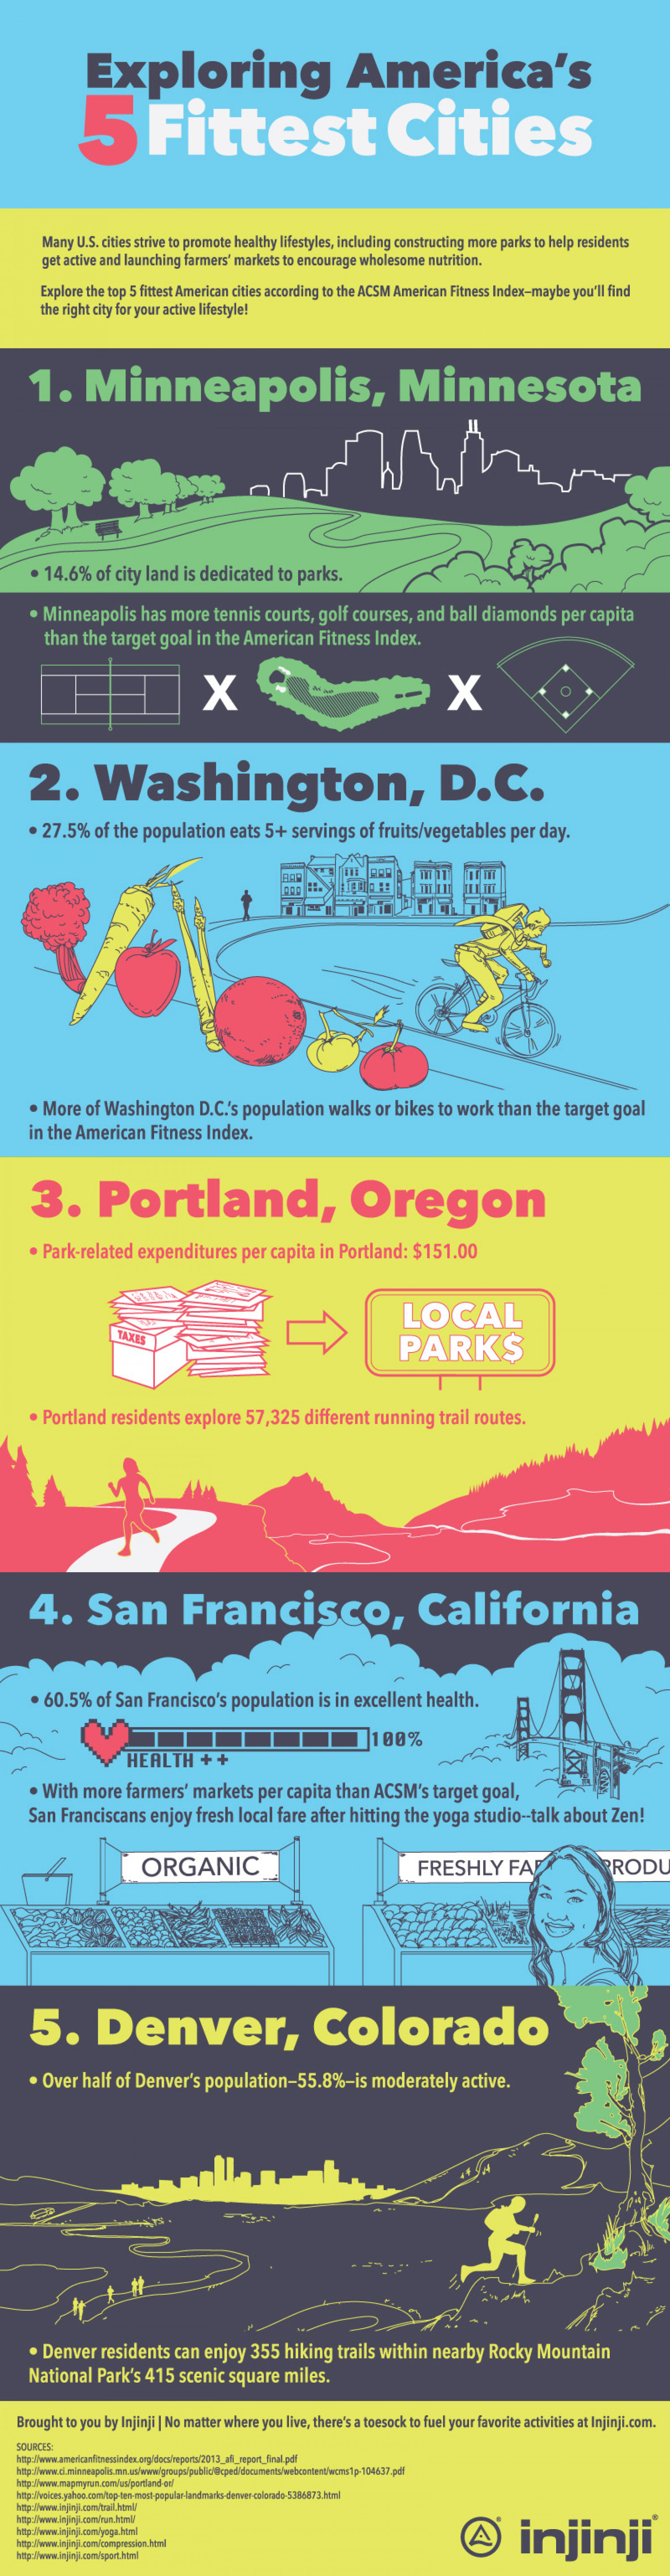 Exploring America's 5 Fittest Cities Infographic